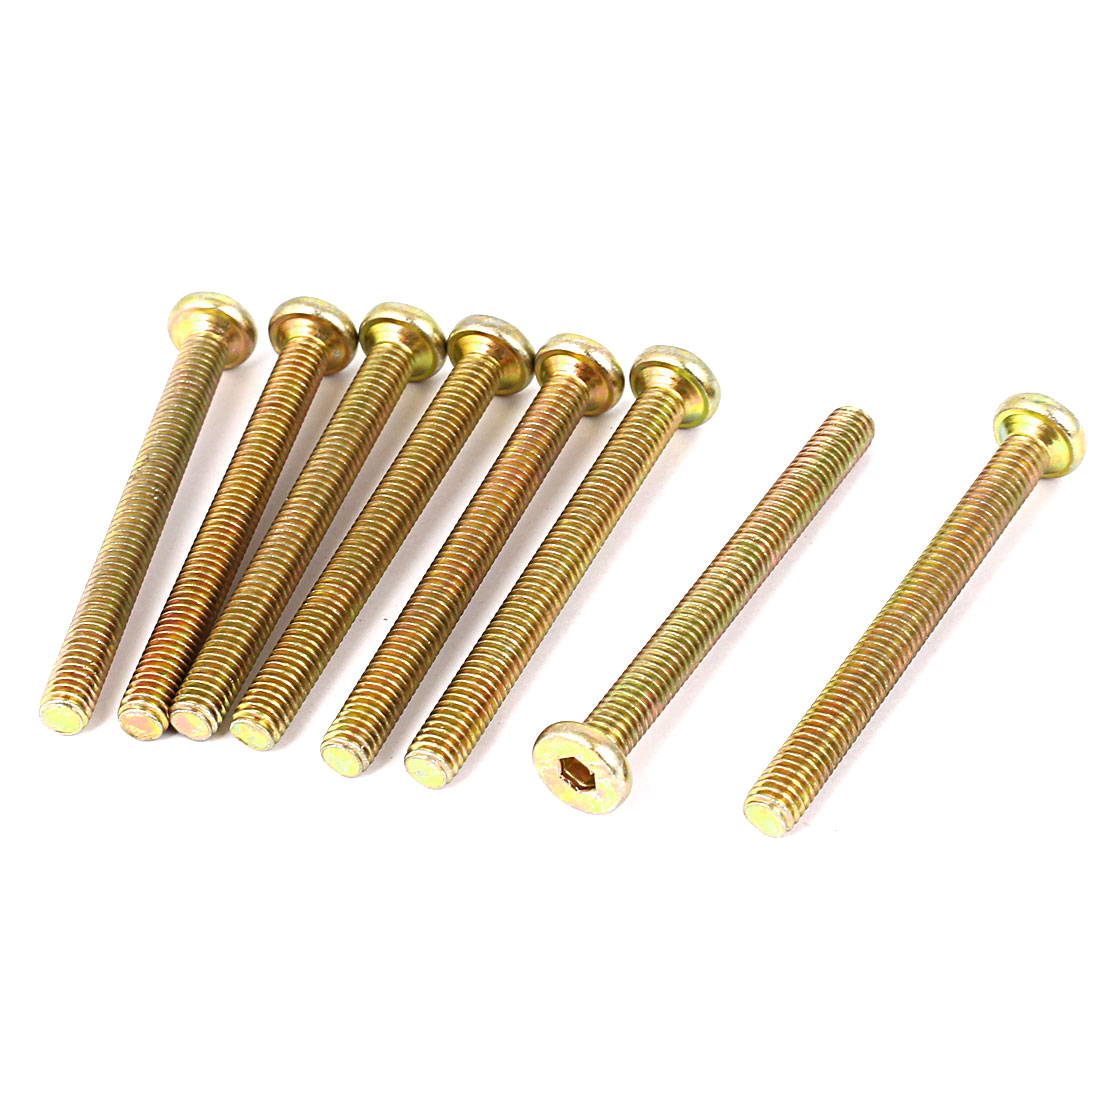 M6 x 60mm Hex Bolt Socket Head Cap Machine Screws Bronze Tone 8 Pcs